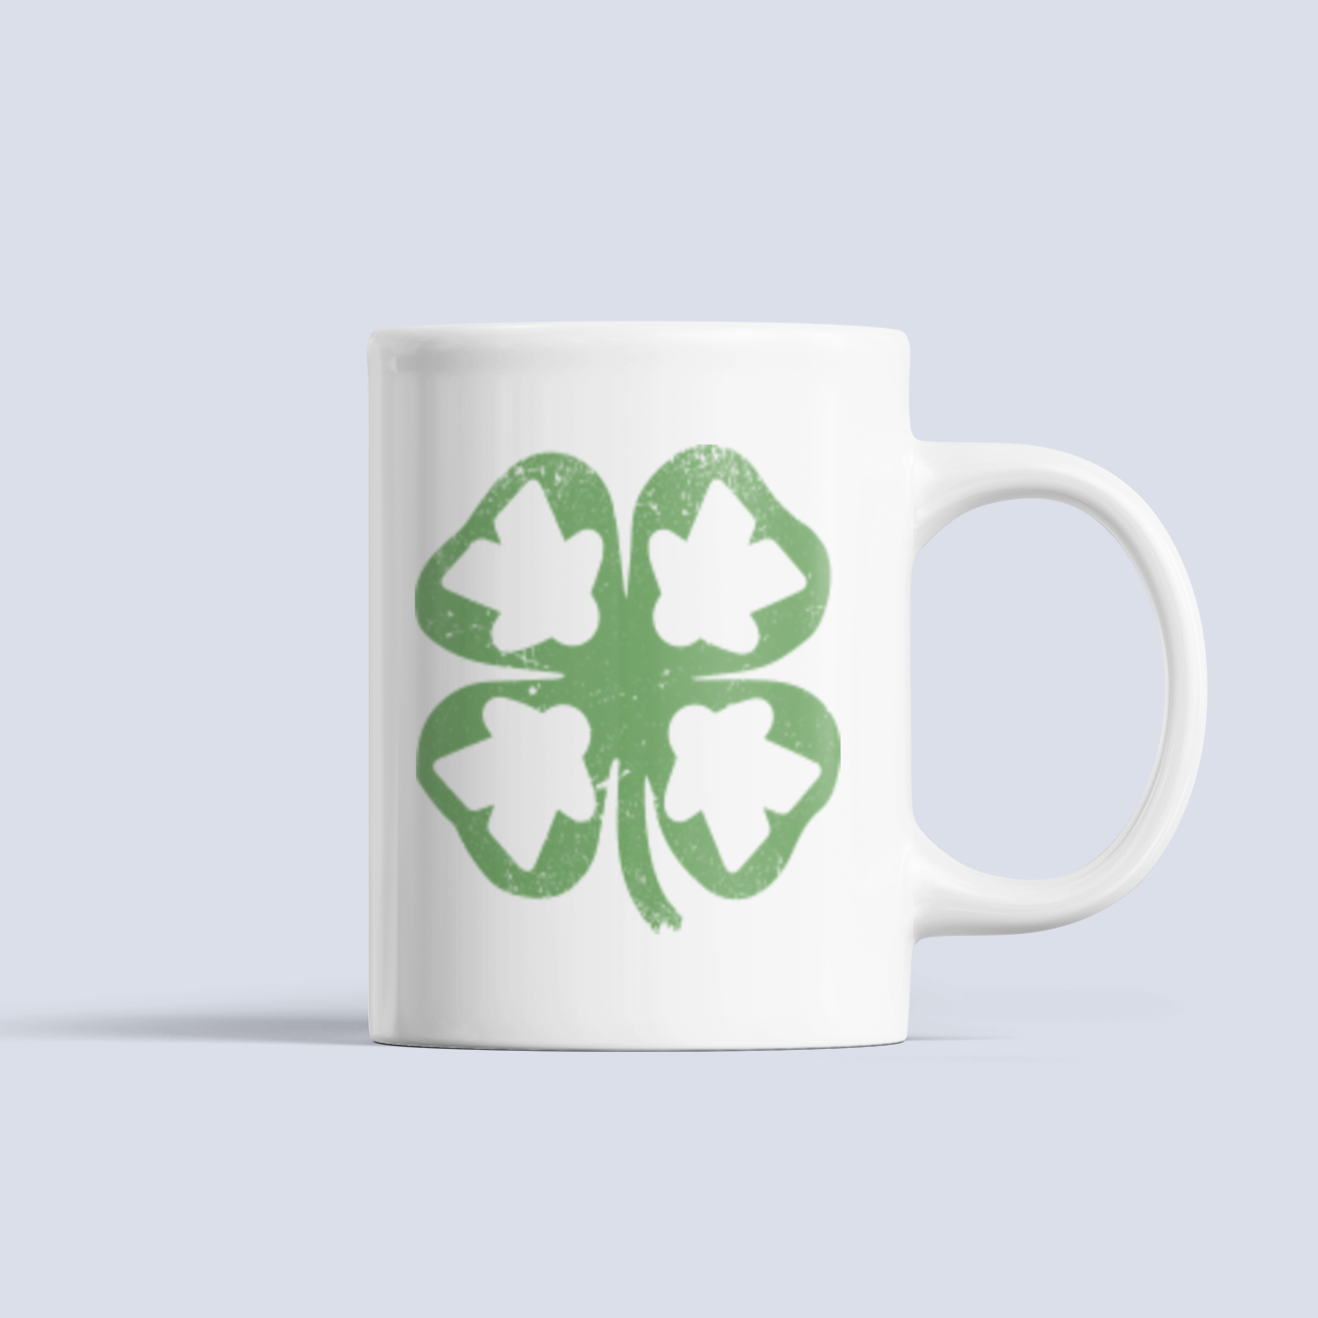 Meeple Leaf Clover Boardgame Ceramic Mug